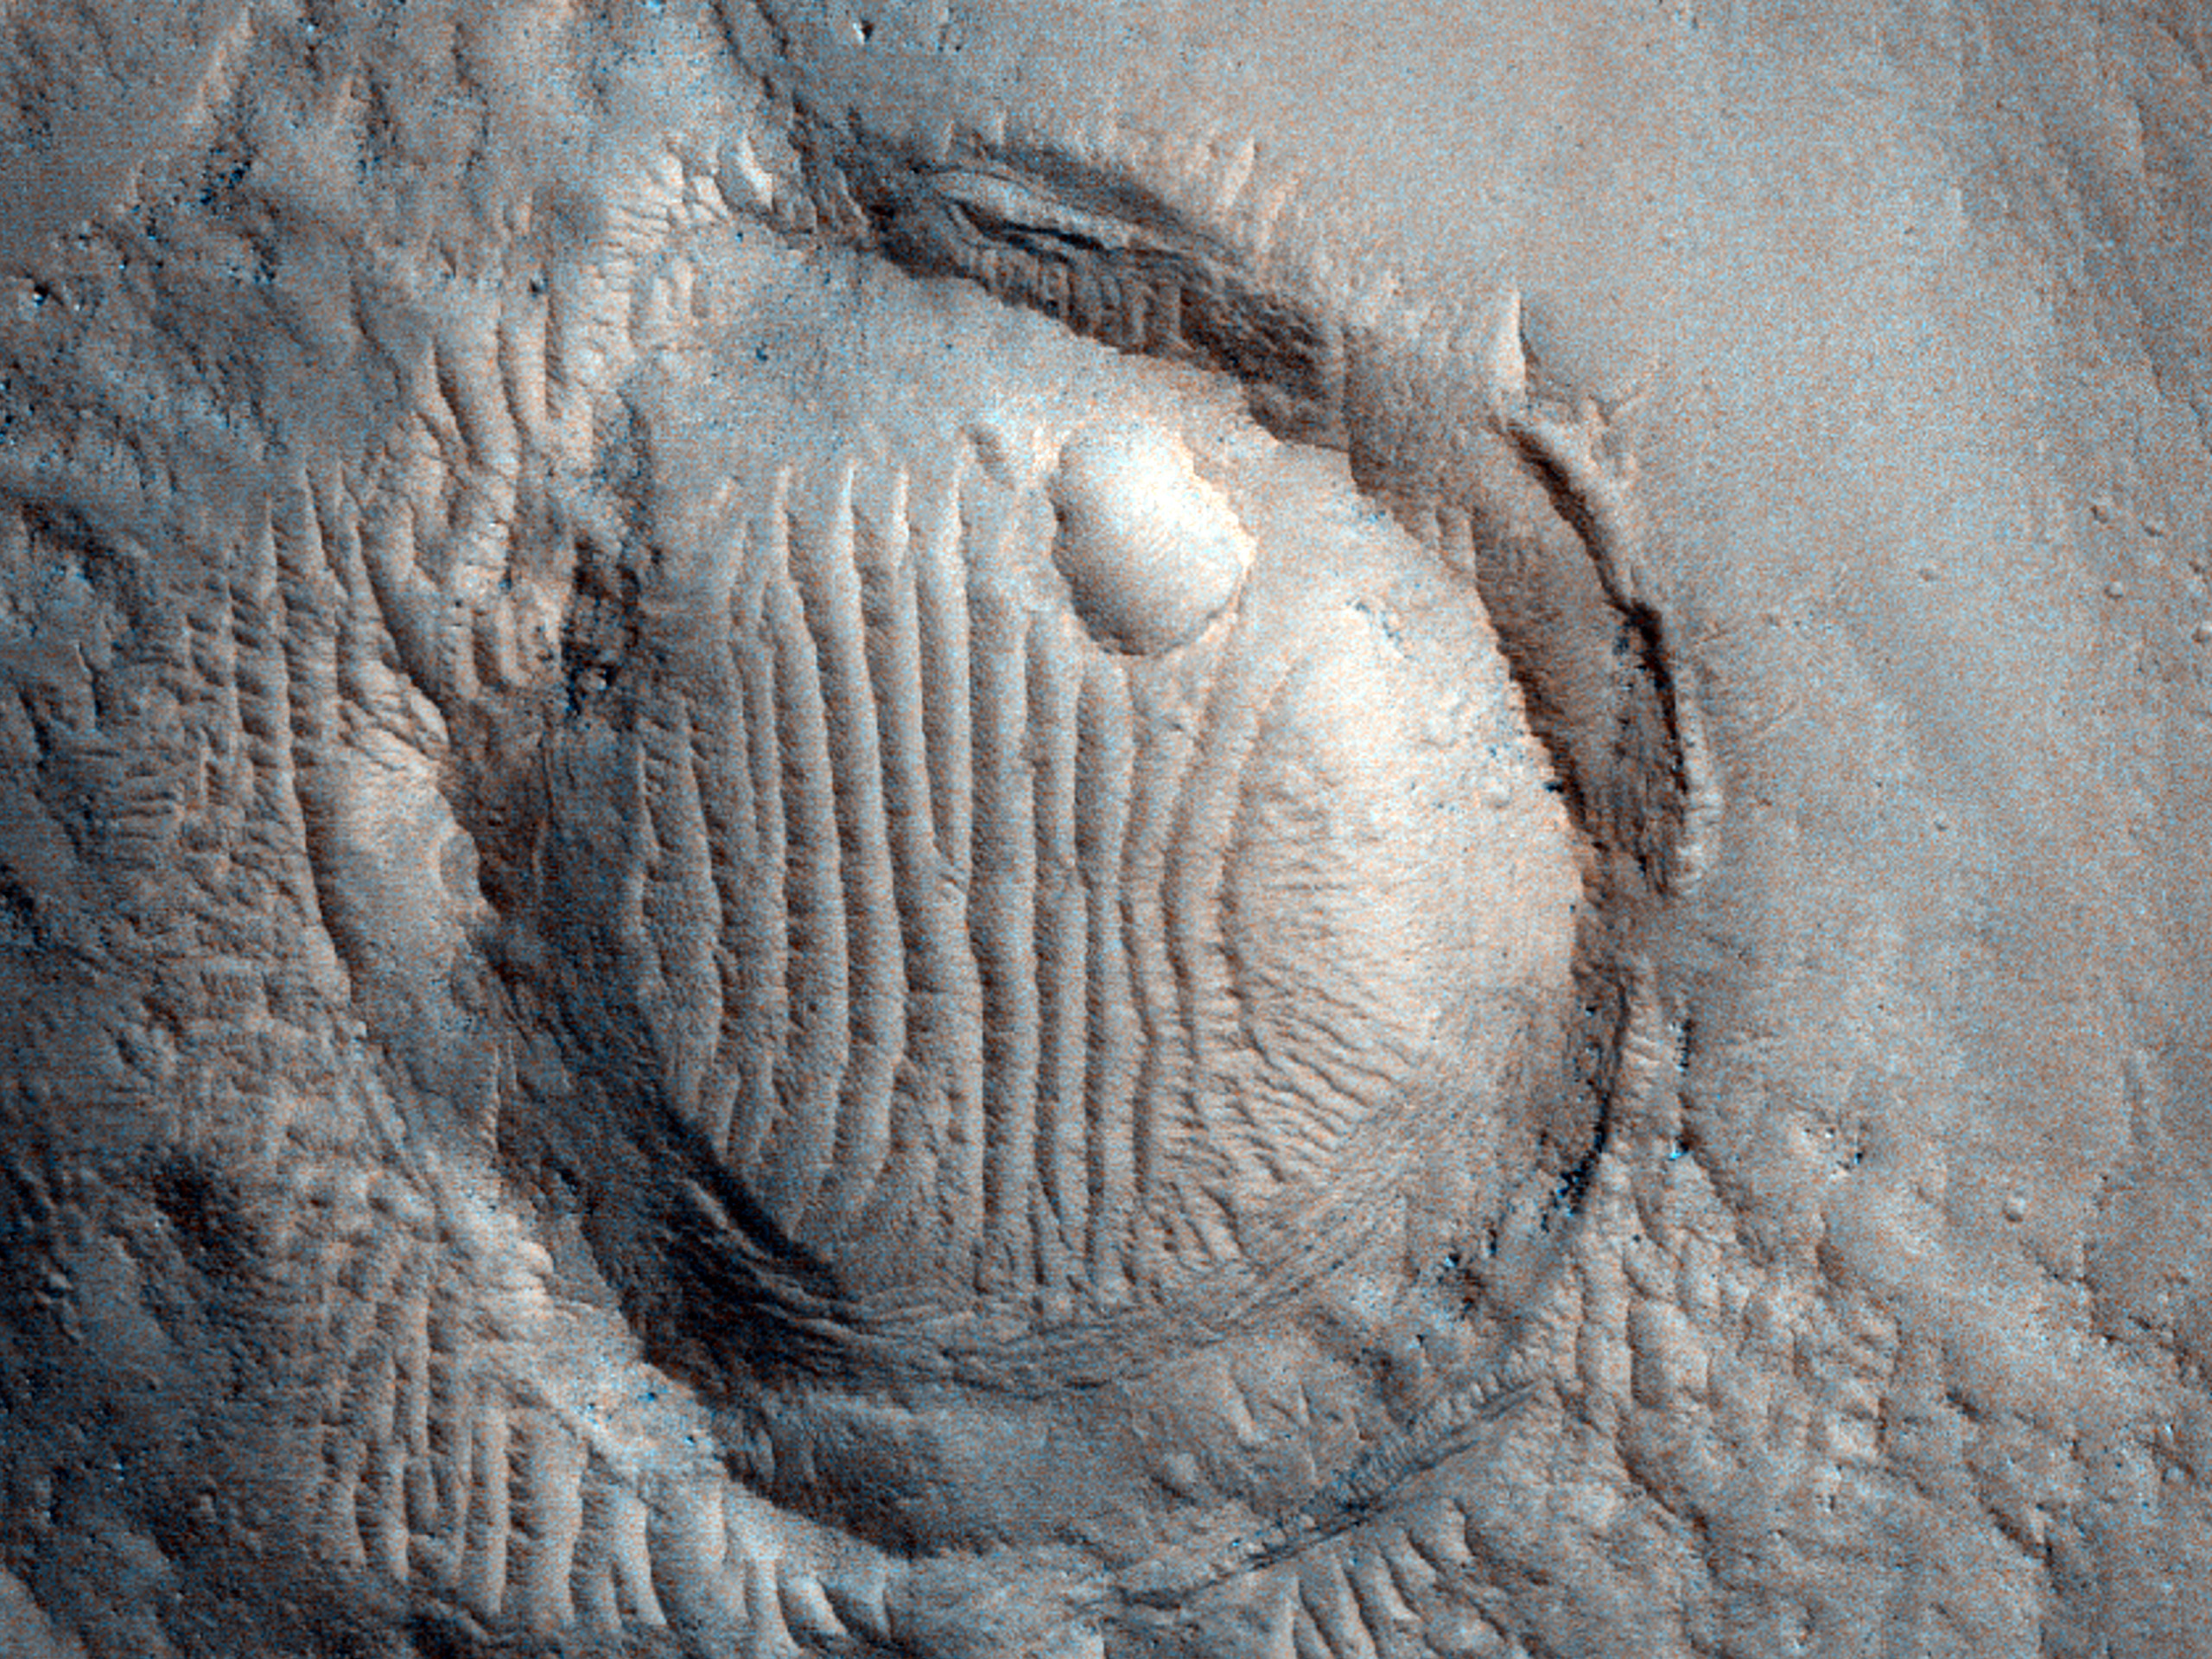 Thermally Anomalous Crater on Hrad Vallis Flow